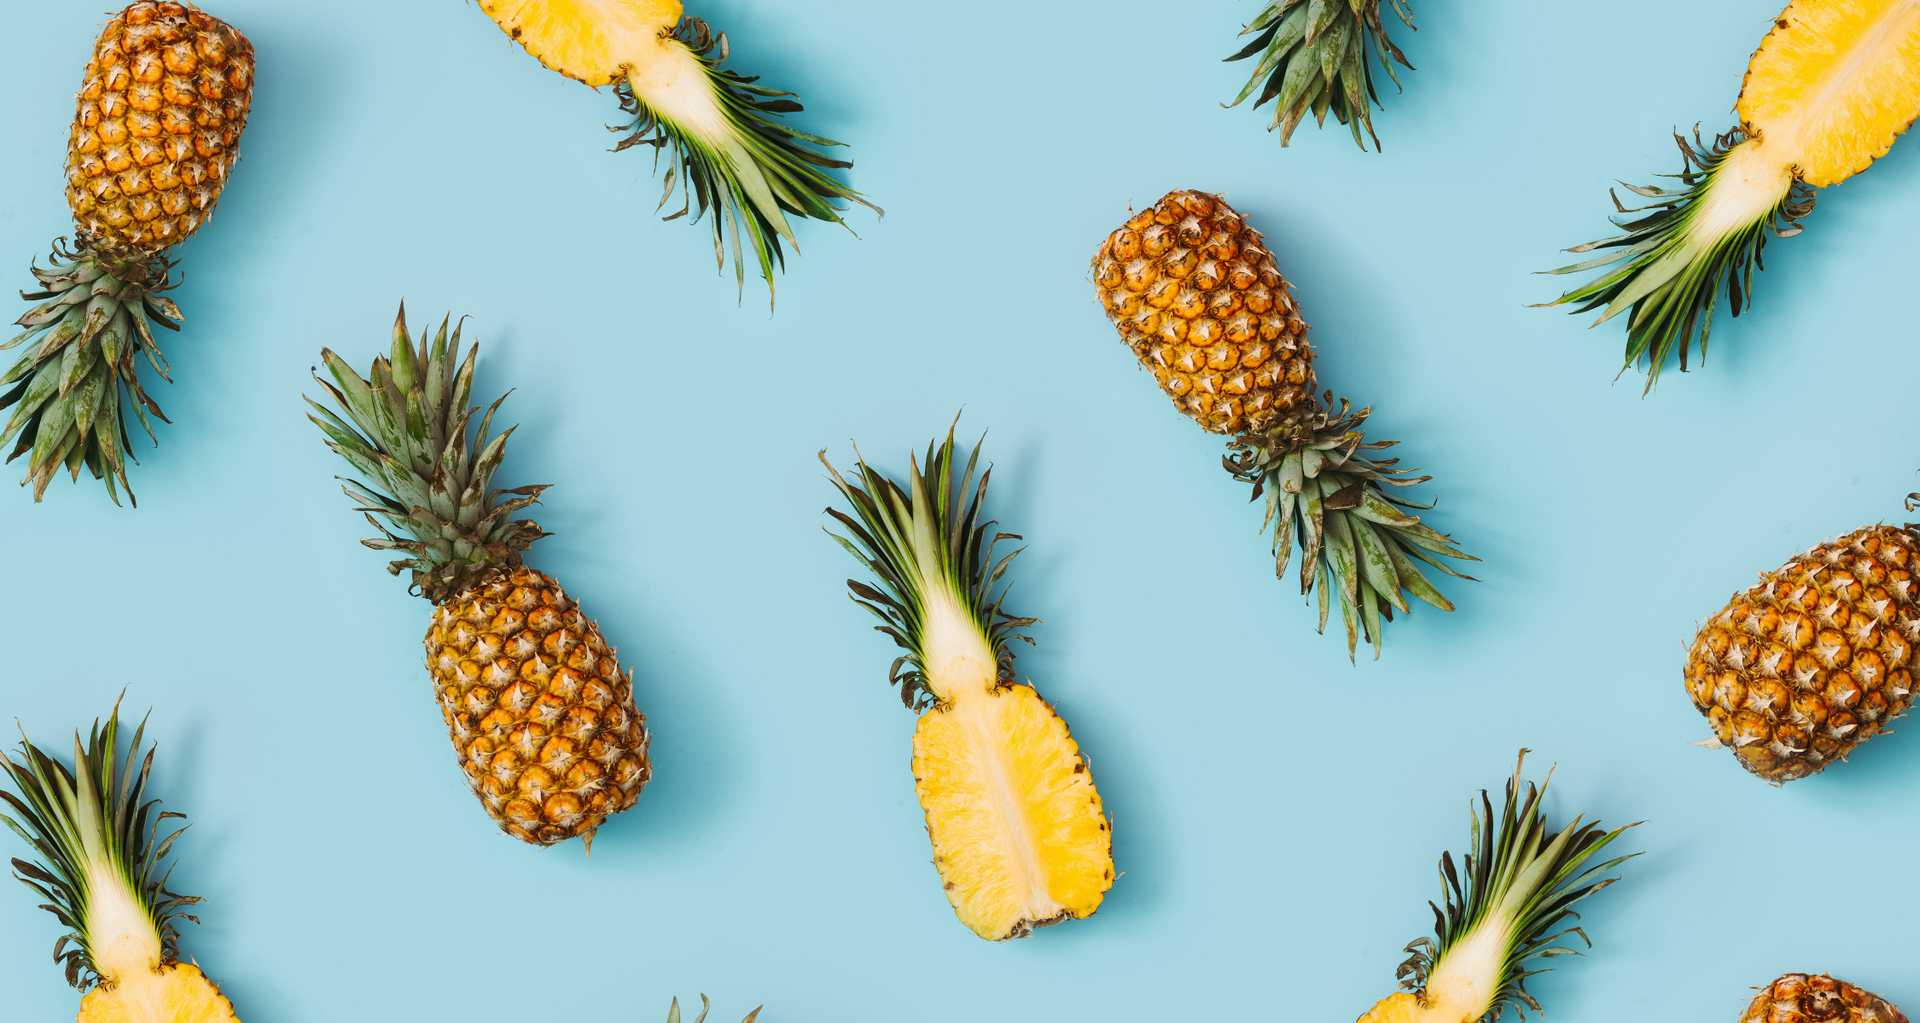 Hero background image of many pineapples